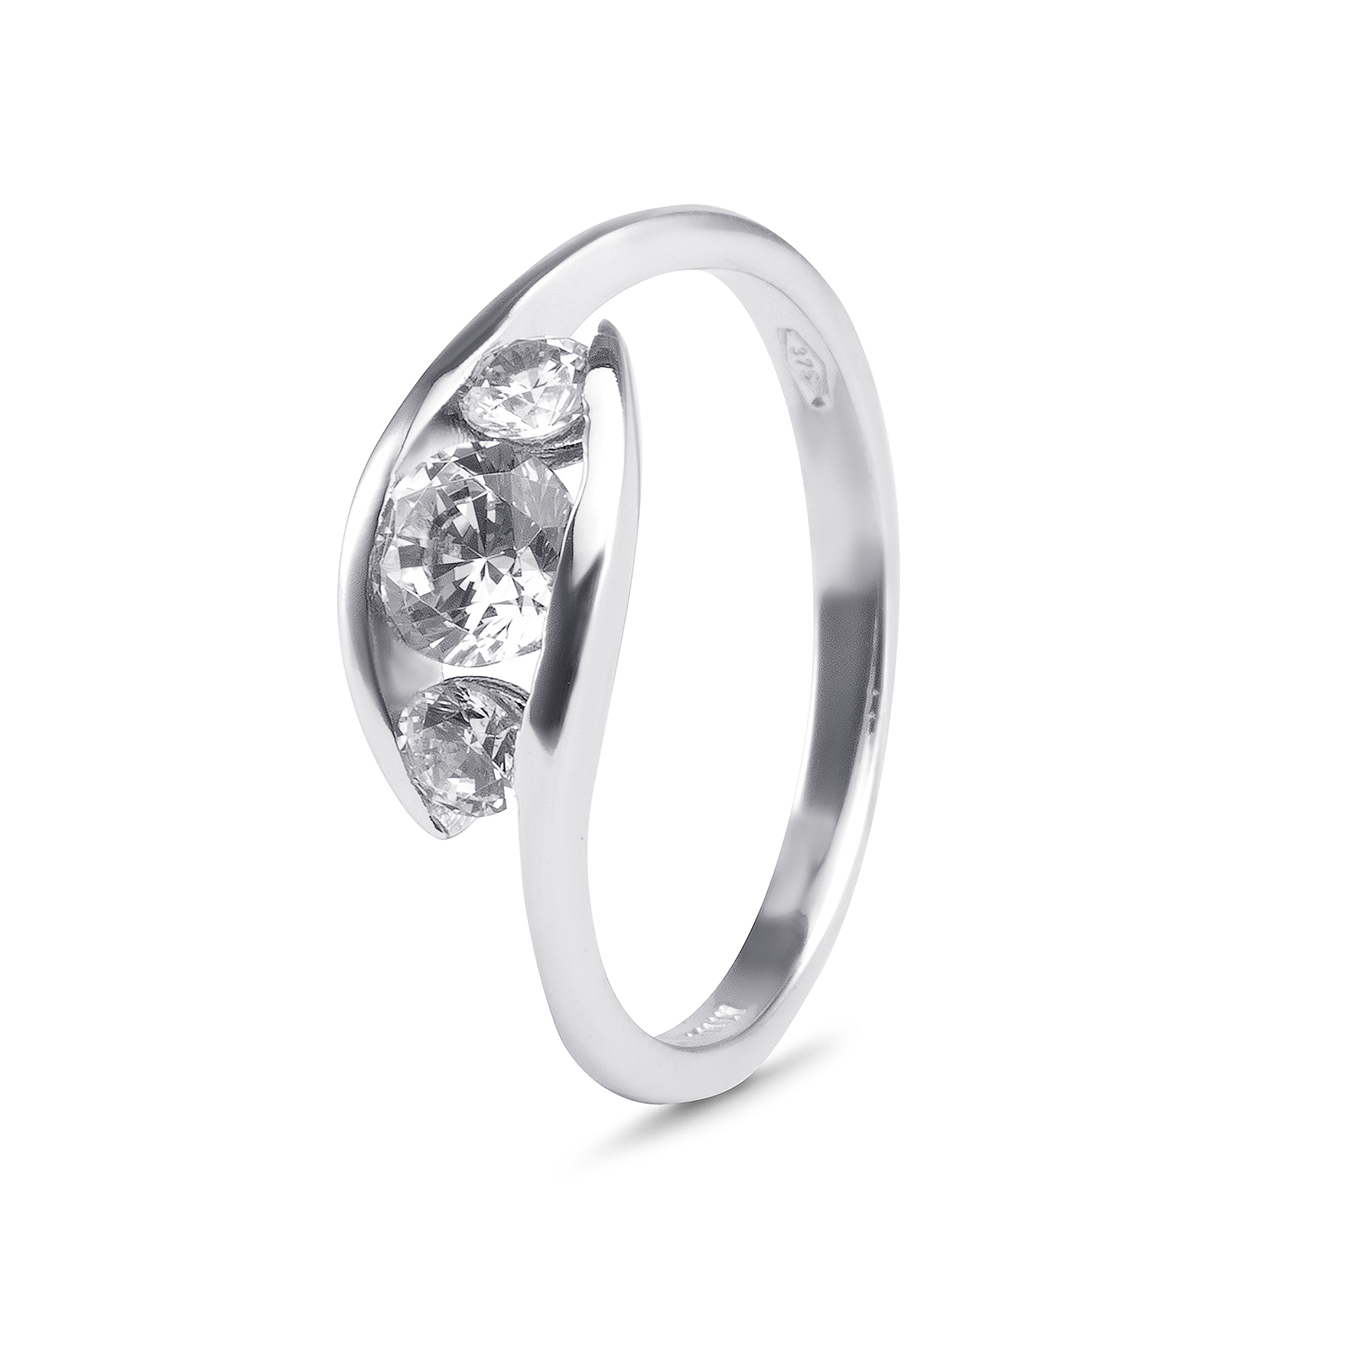 9Ct White Gold Cubic Zirconia Trinity Swirl Ring Pertaining To 2020 Champagne And White Diamond Swirled Anniversary Bands In Rose Gold (View 7 of 25)